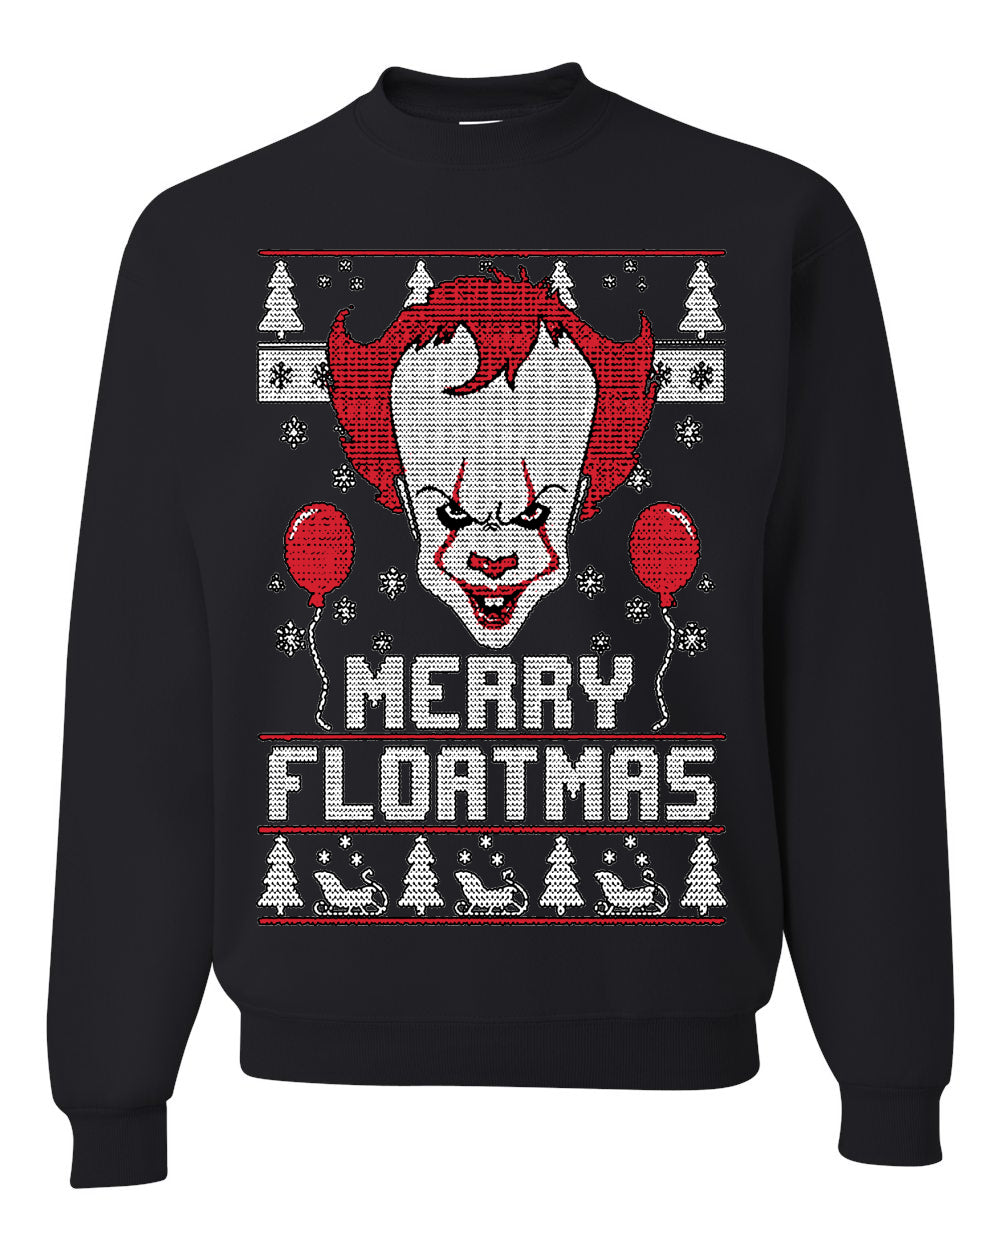 Merry Floatmas | IT Clown Christmas Unisex Crewneck Graphic Sweatshirt